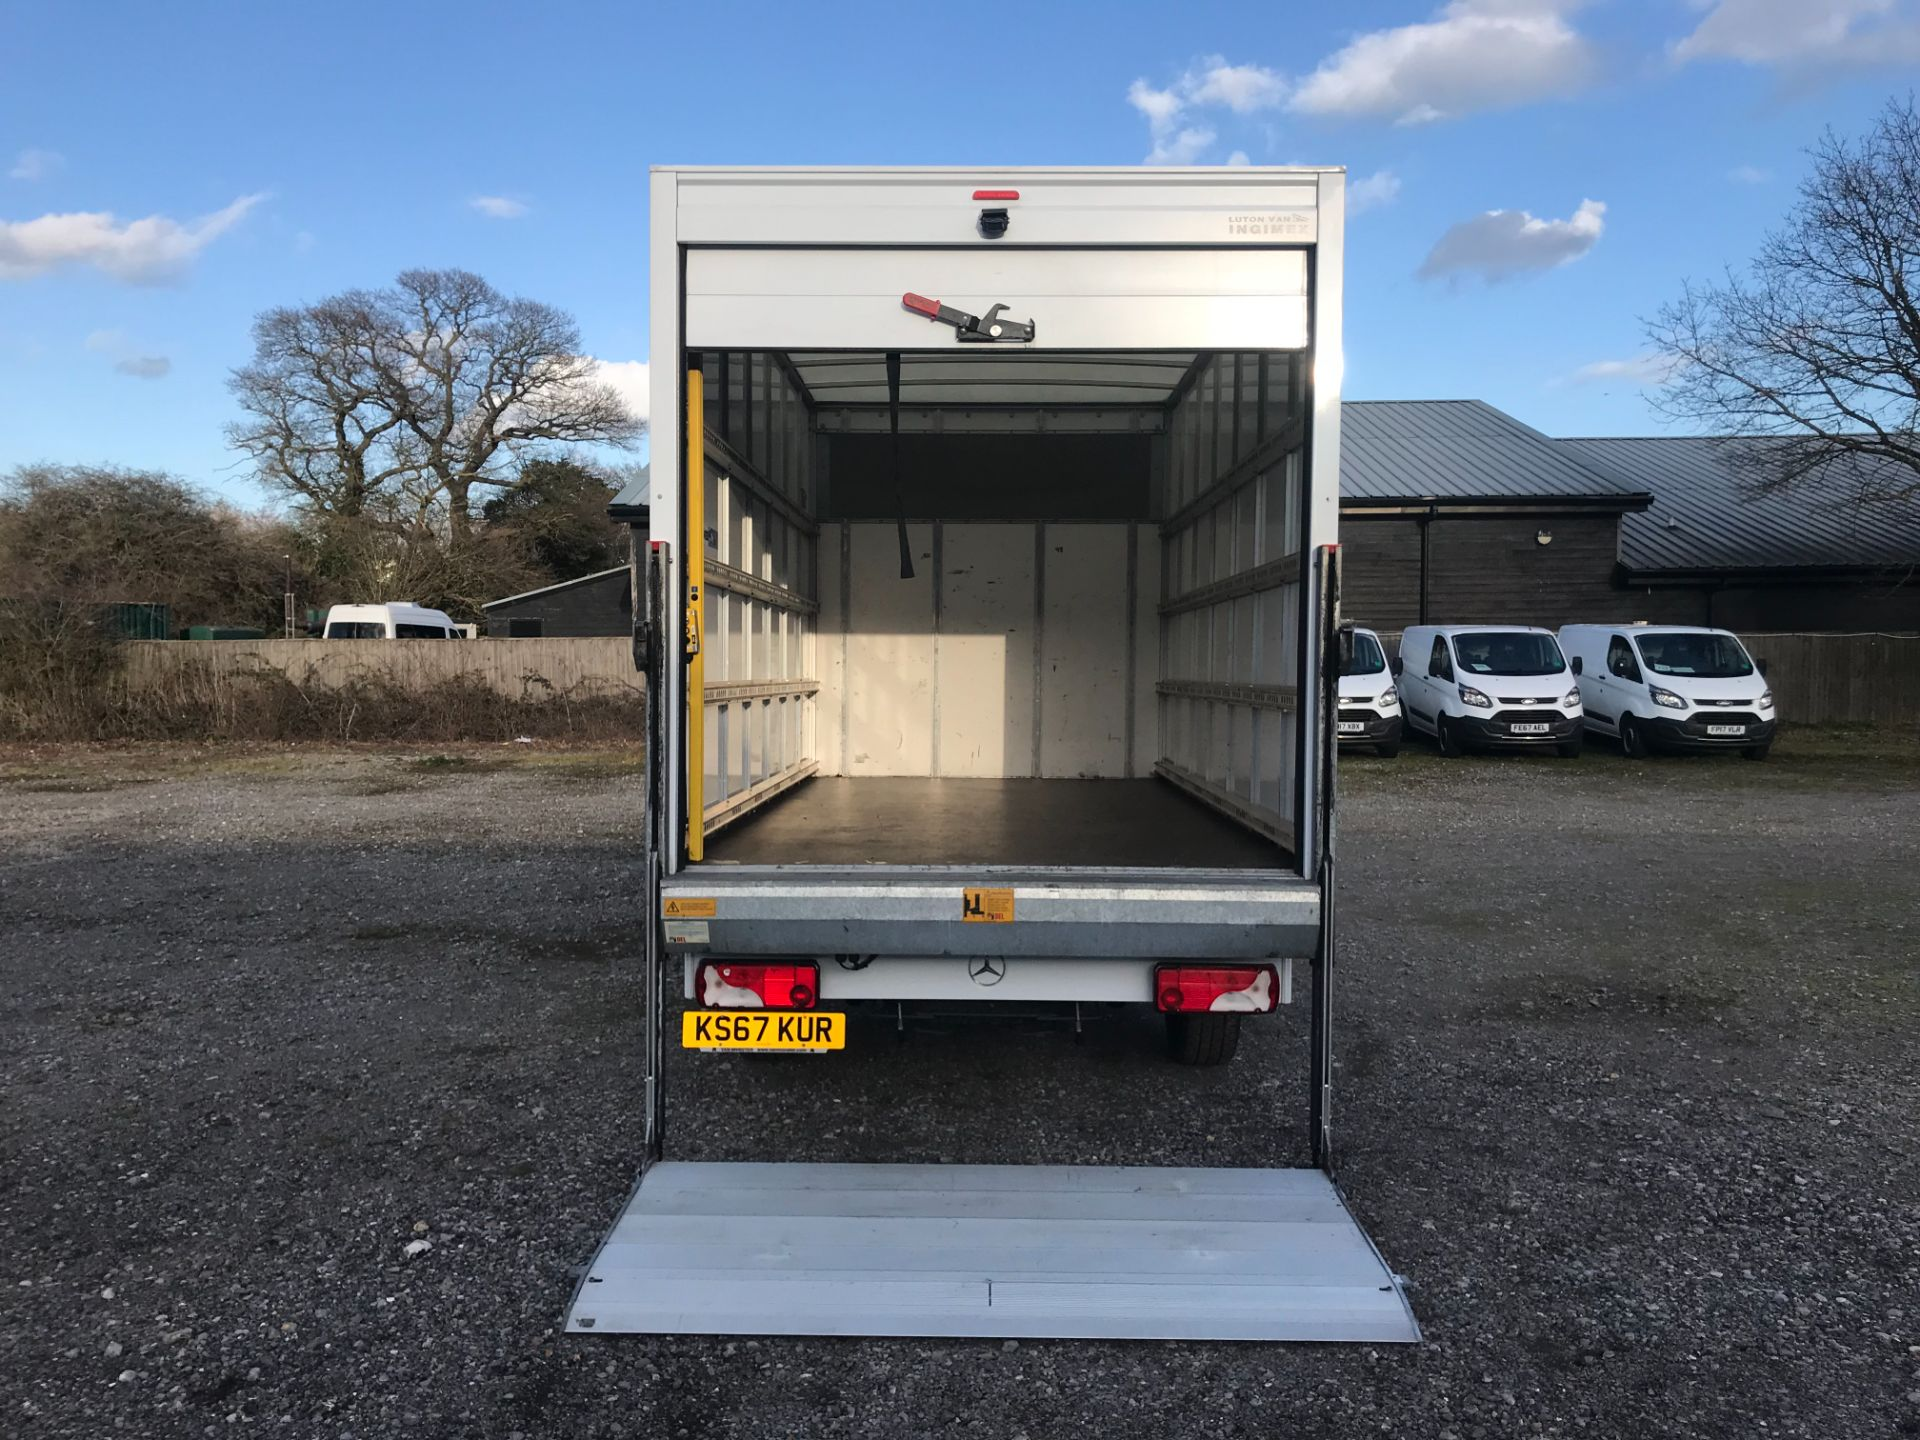 2018 Mercedes-Benz Sprinter 314 LWB LUTON EURO 6 With Tail Lift (KS67KUR) Thumbnail 35